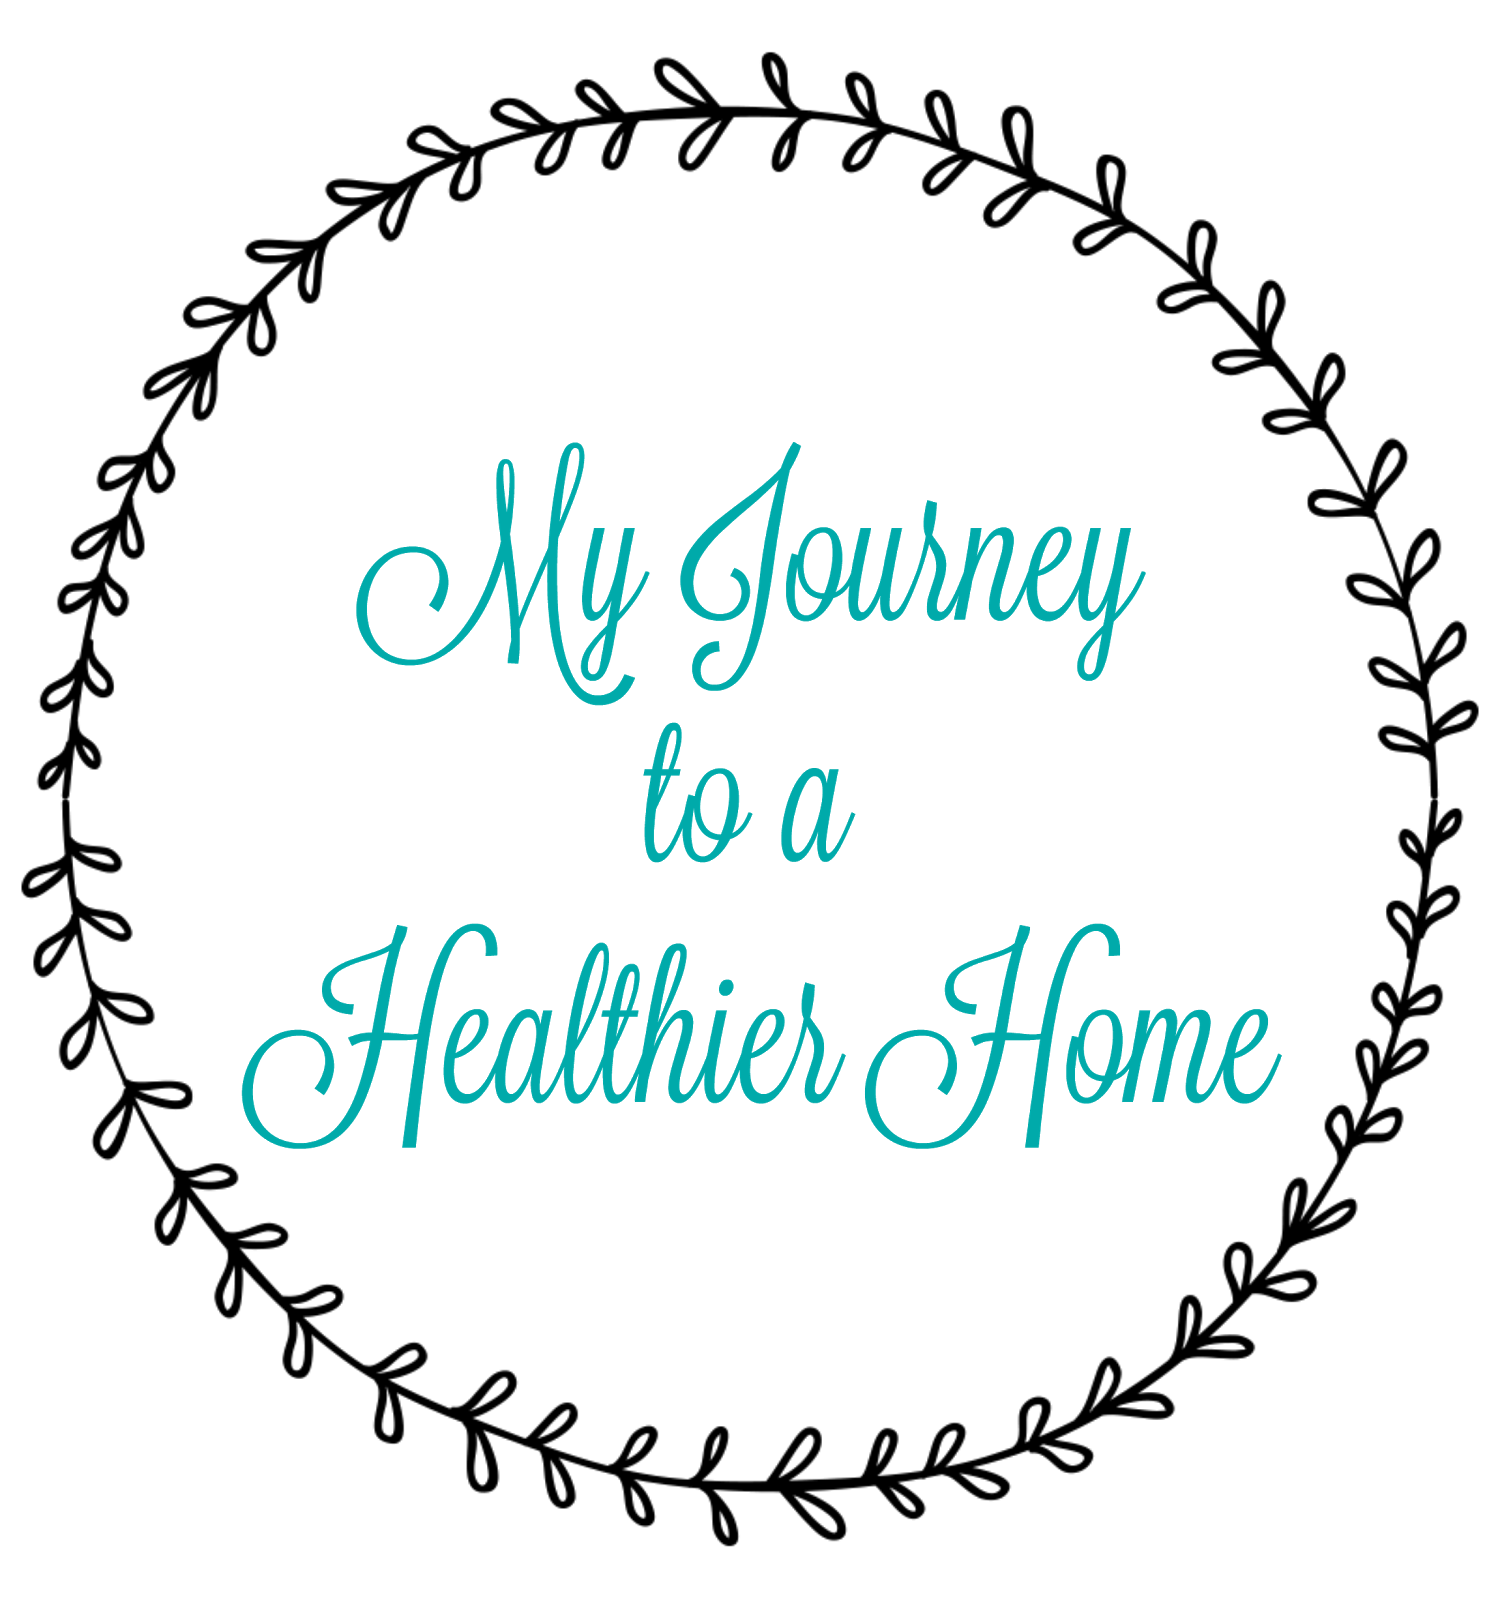 Join me on my journey!